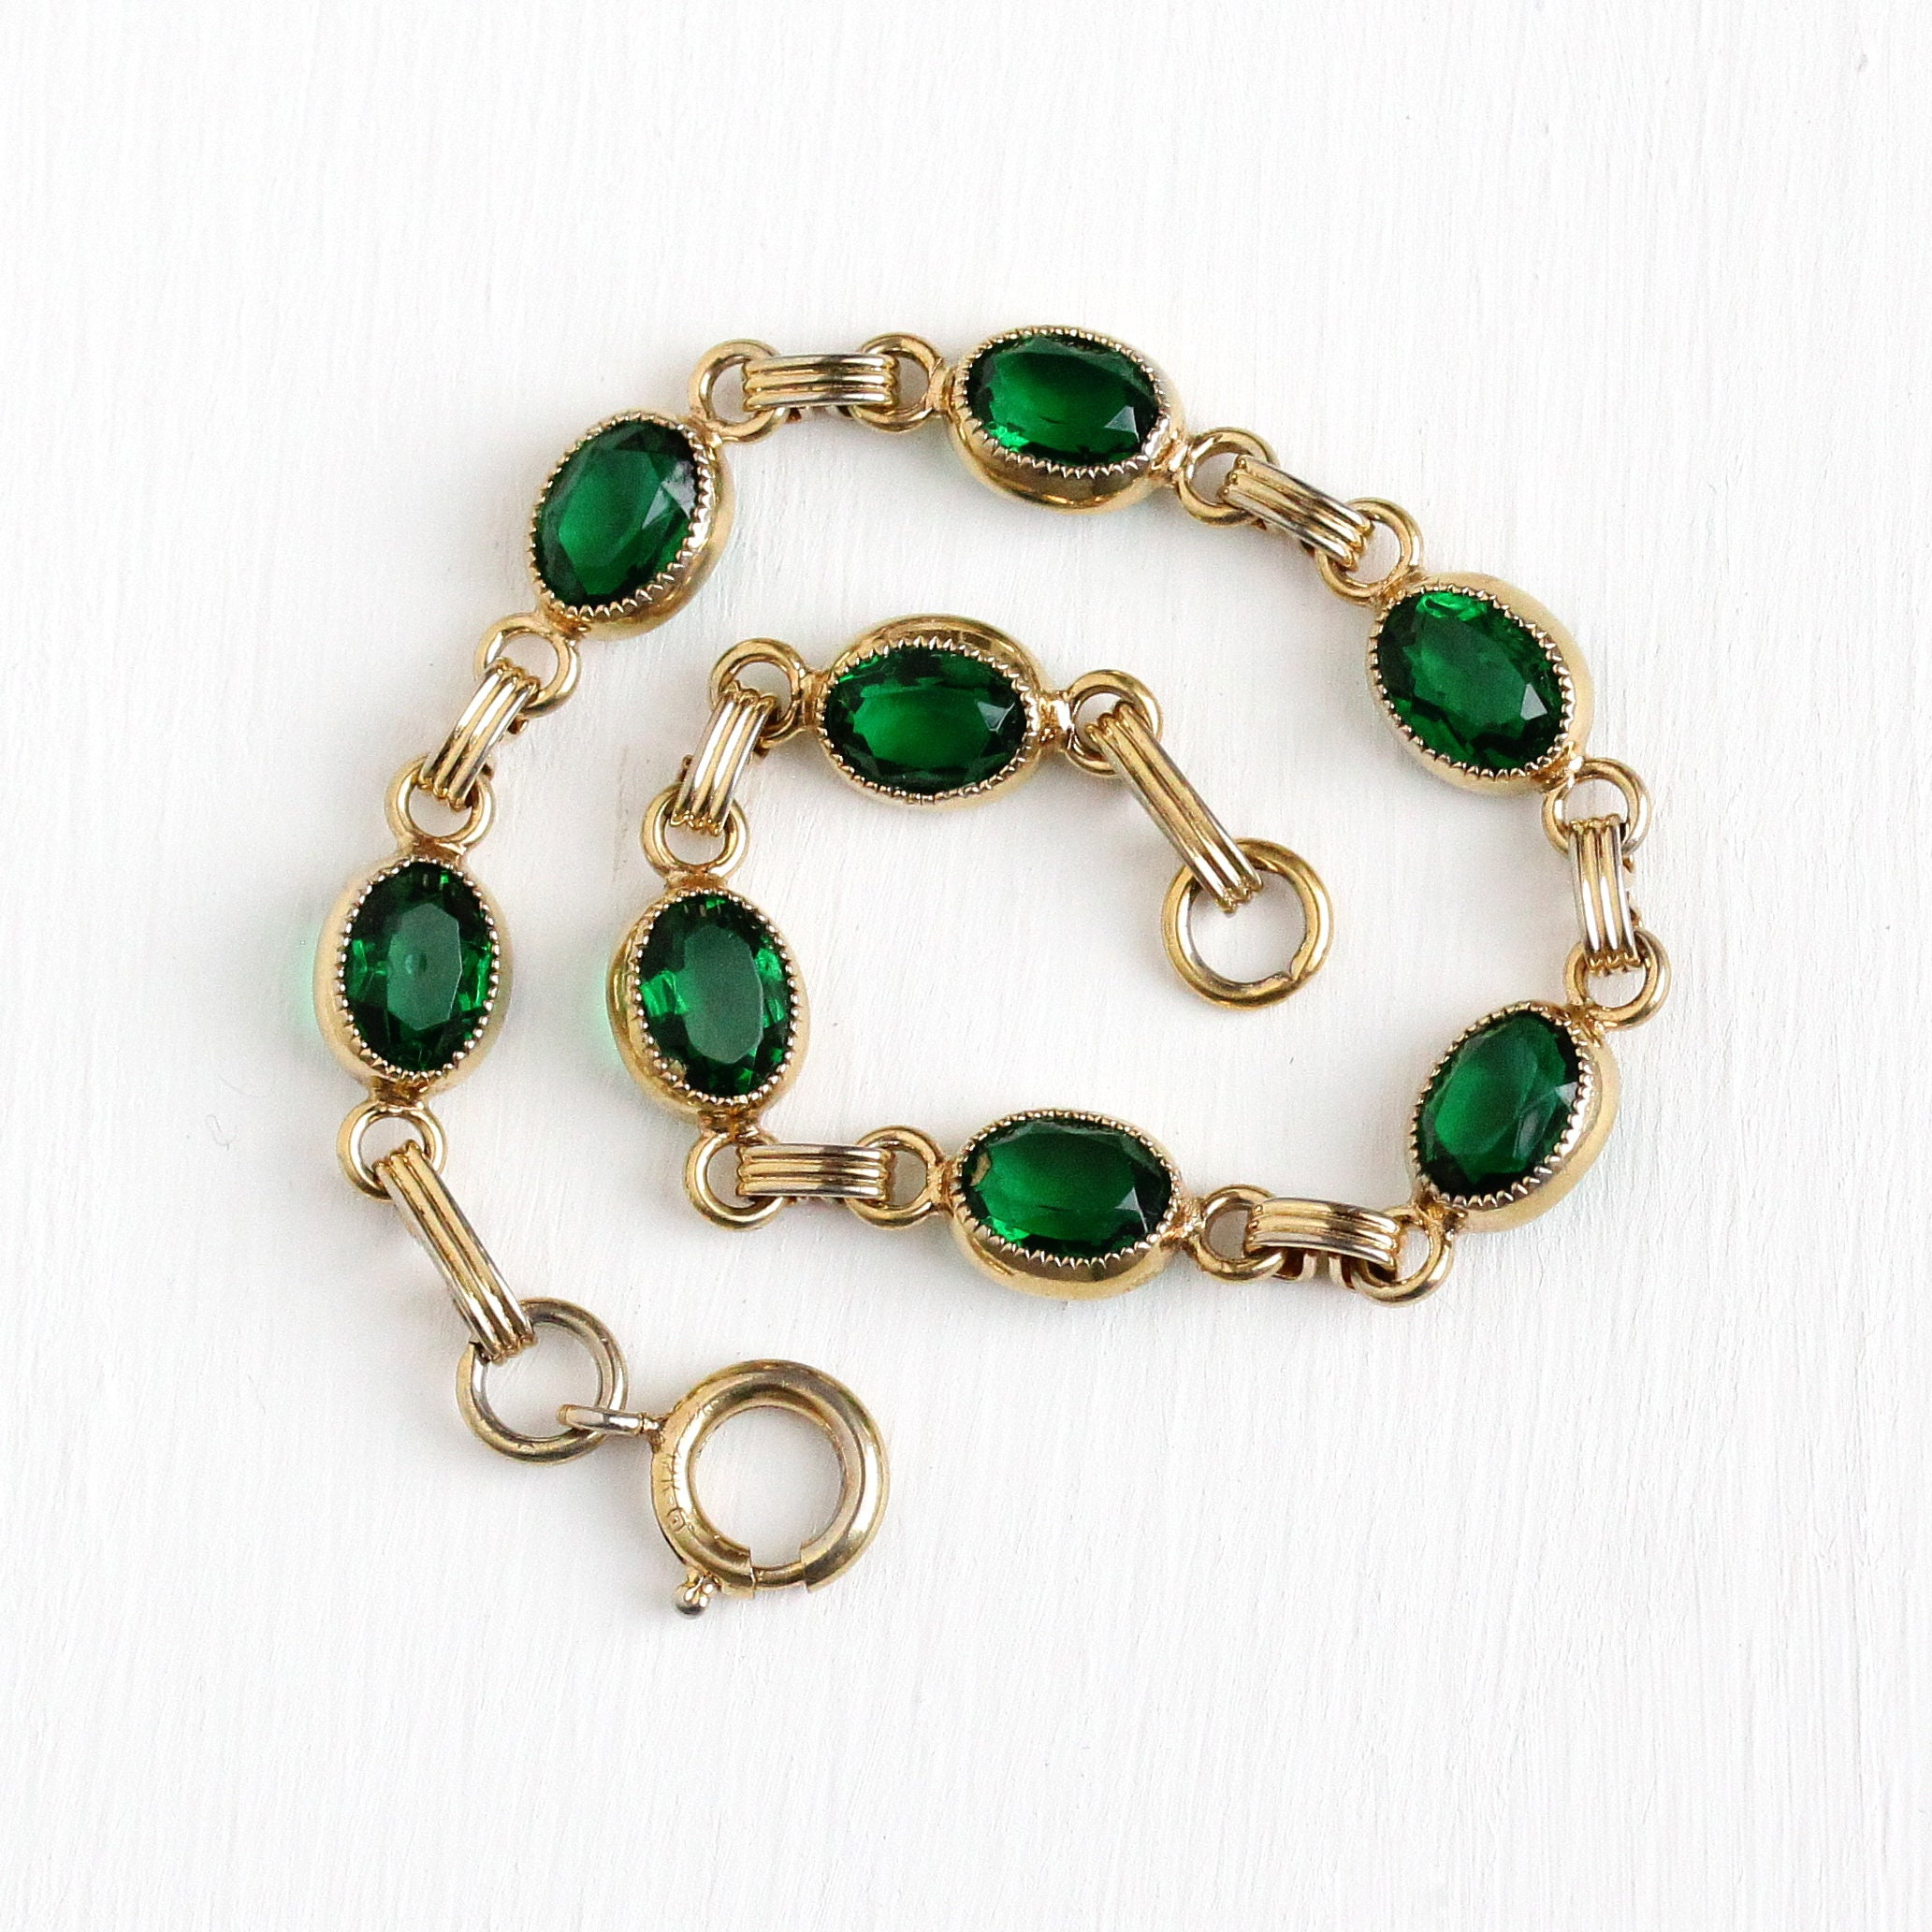 emerald emeraldnecklace zambian treated so invoguejewelry clear and emeralds green heat genuine june